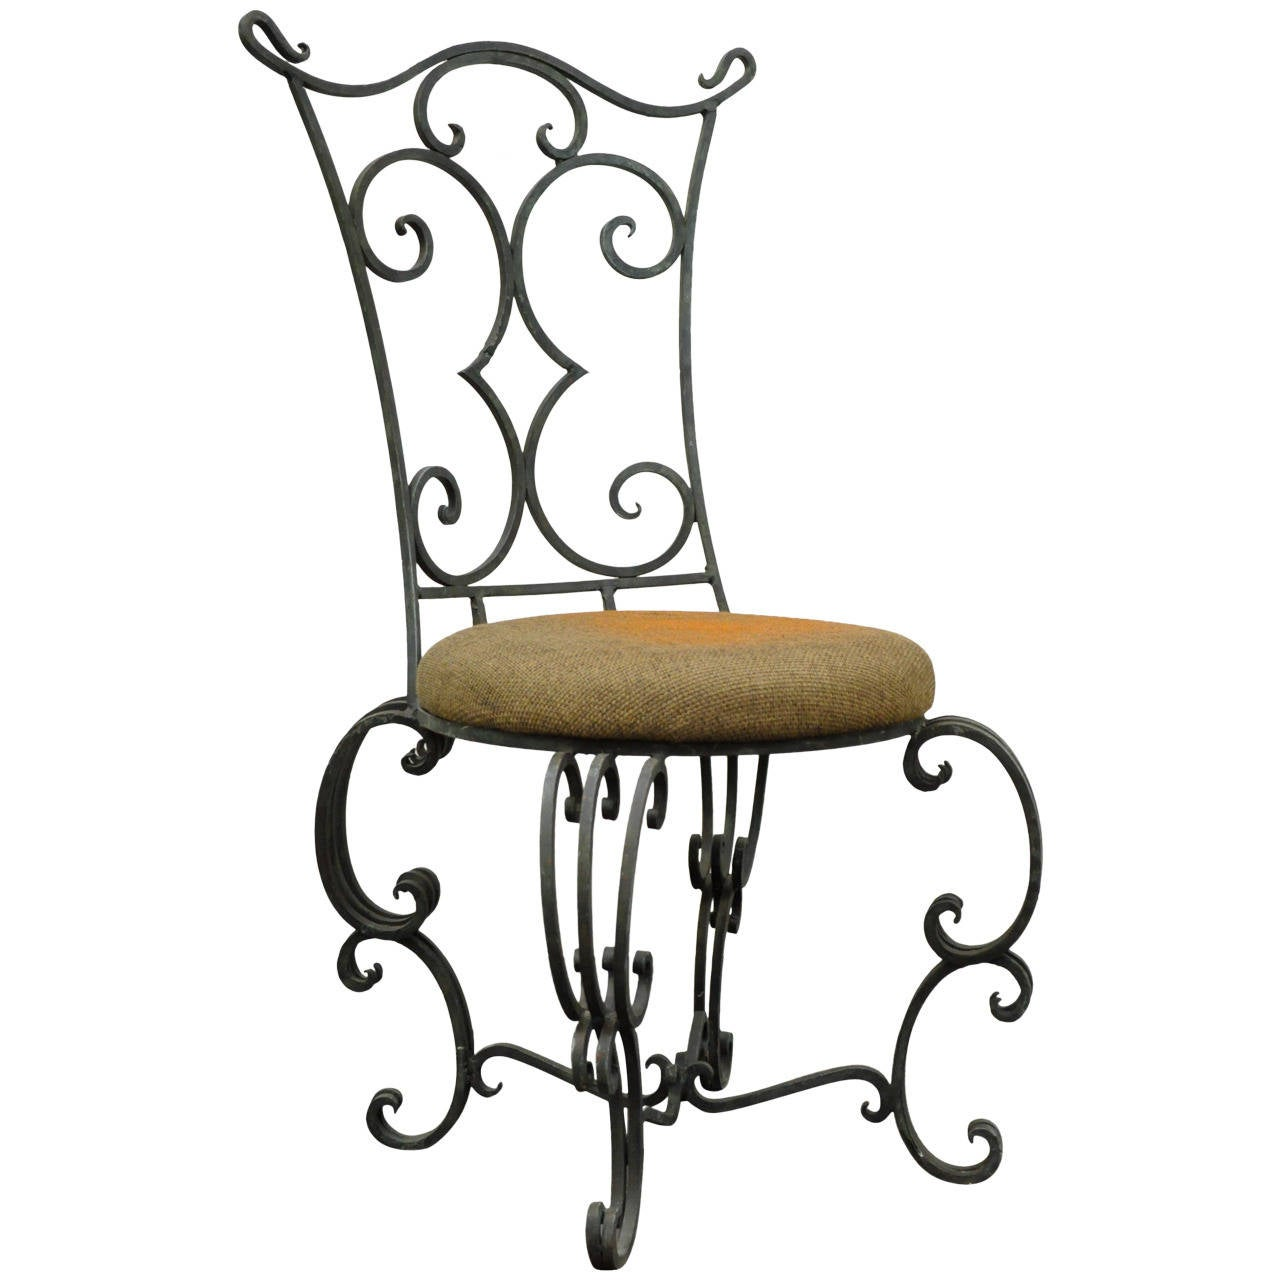 Klismos chair drawing - Whimsical French Art Nouveau Hand Forged Scrolling Iron Side Chair 1